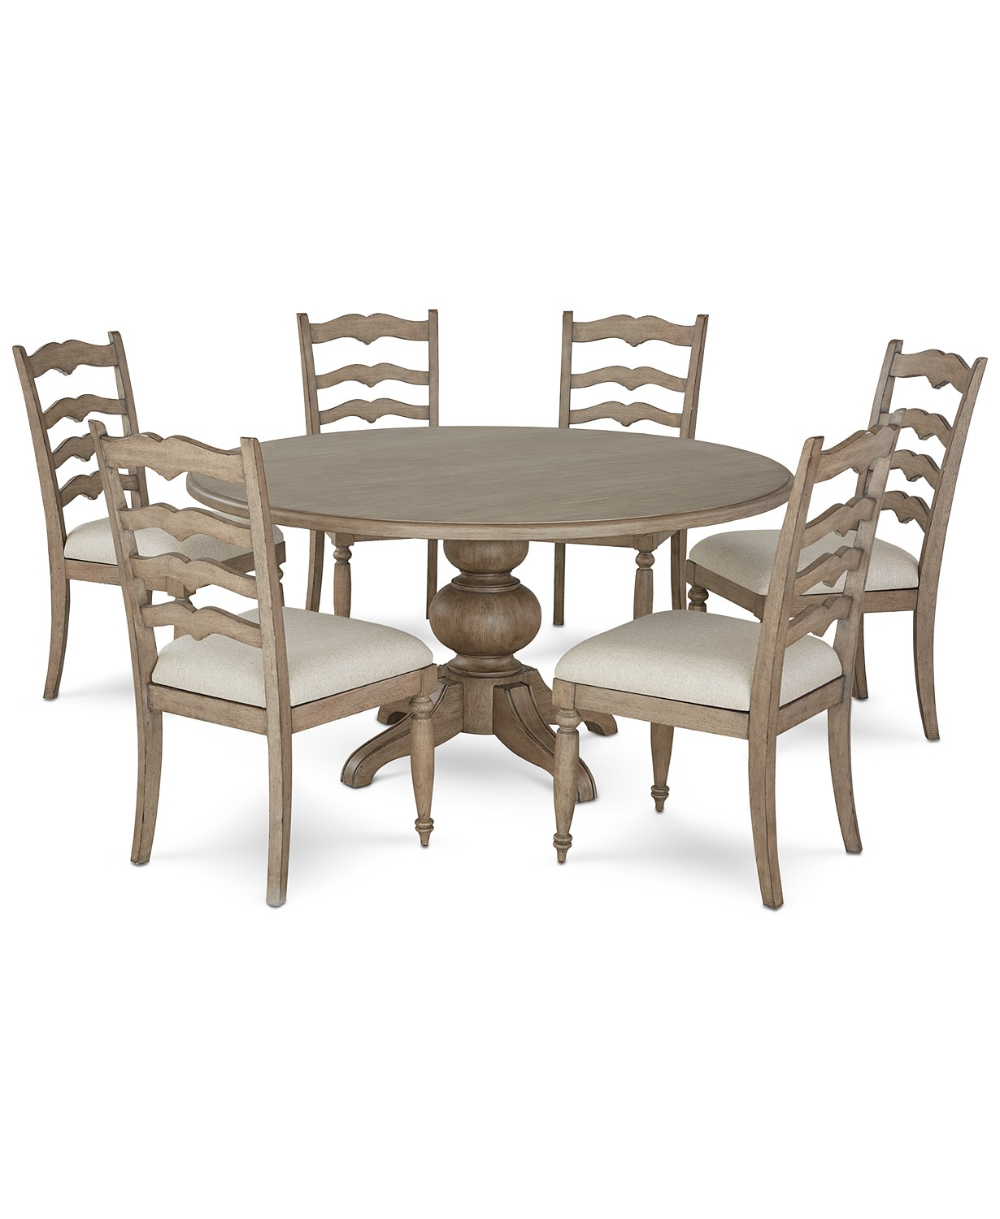 Furniture Ellan Round Dining Furniture 7 Pc Set Table 6 Side Chairs Created For Macy S Reviews Furniture Macy S In 2020 Round Dining Dining Furniture Furniture